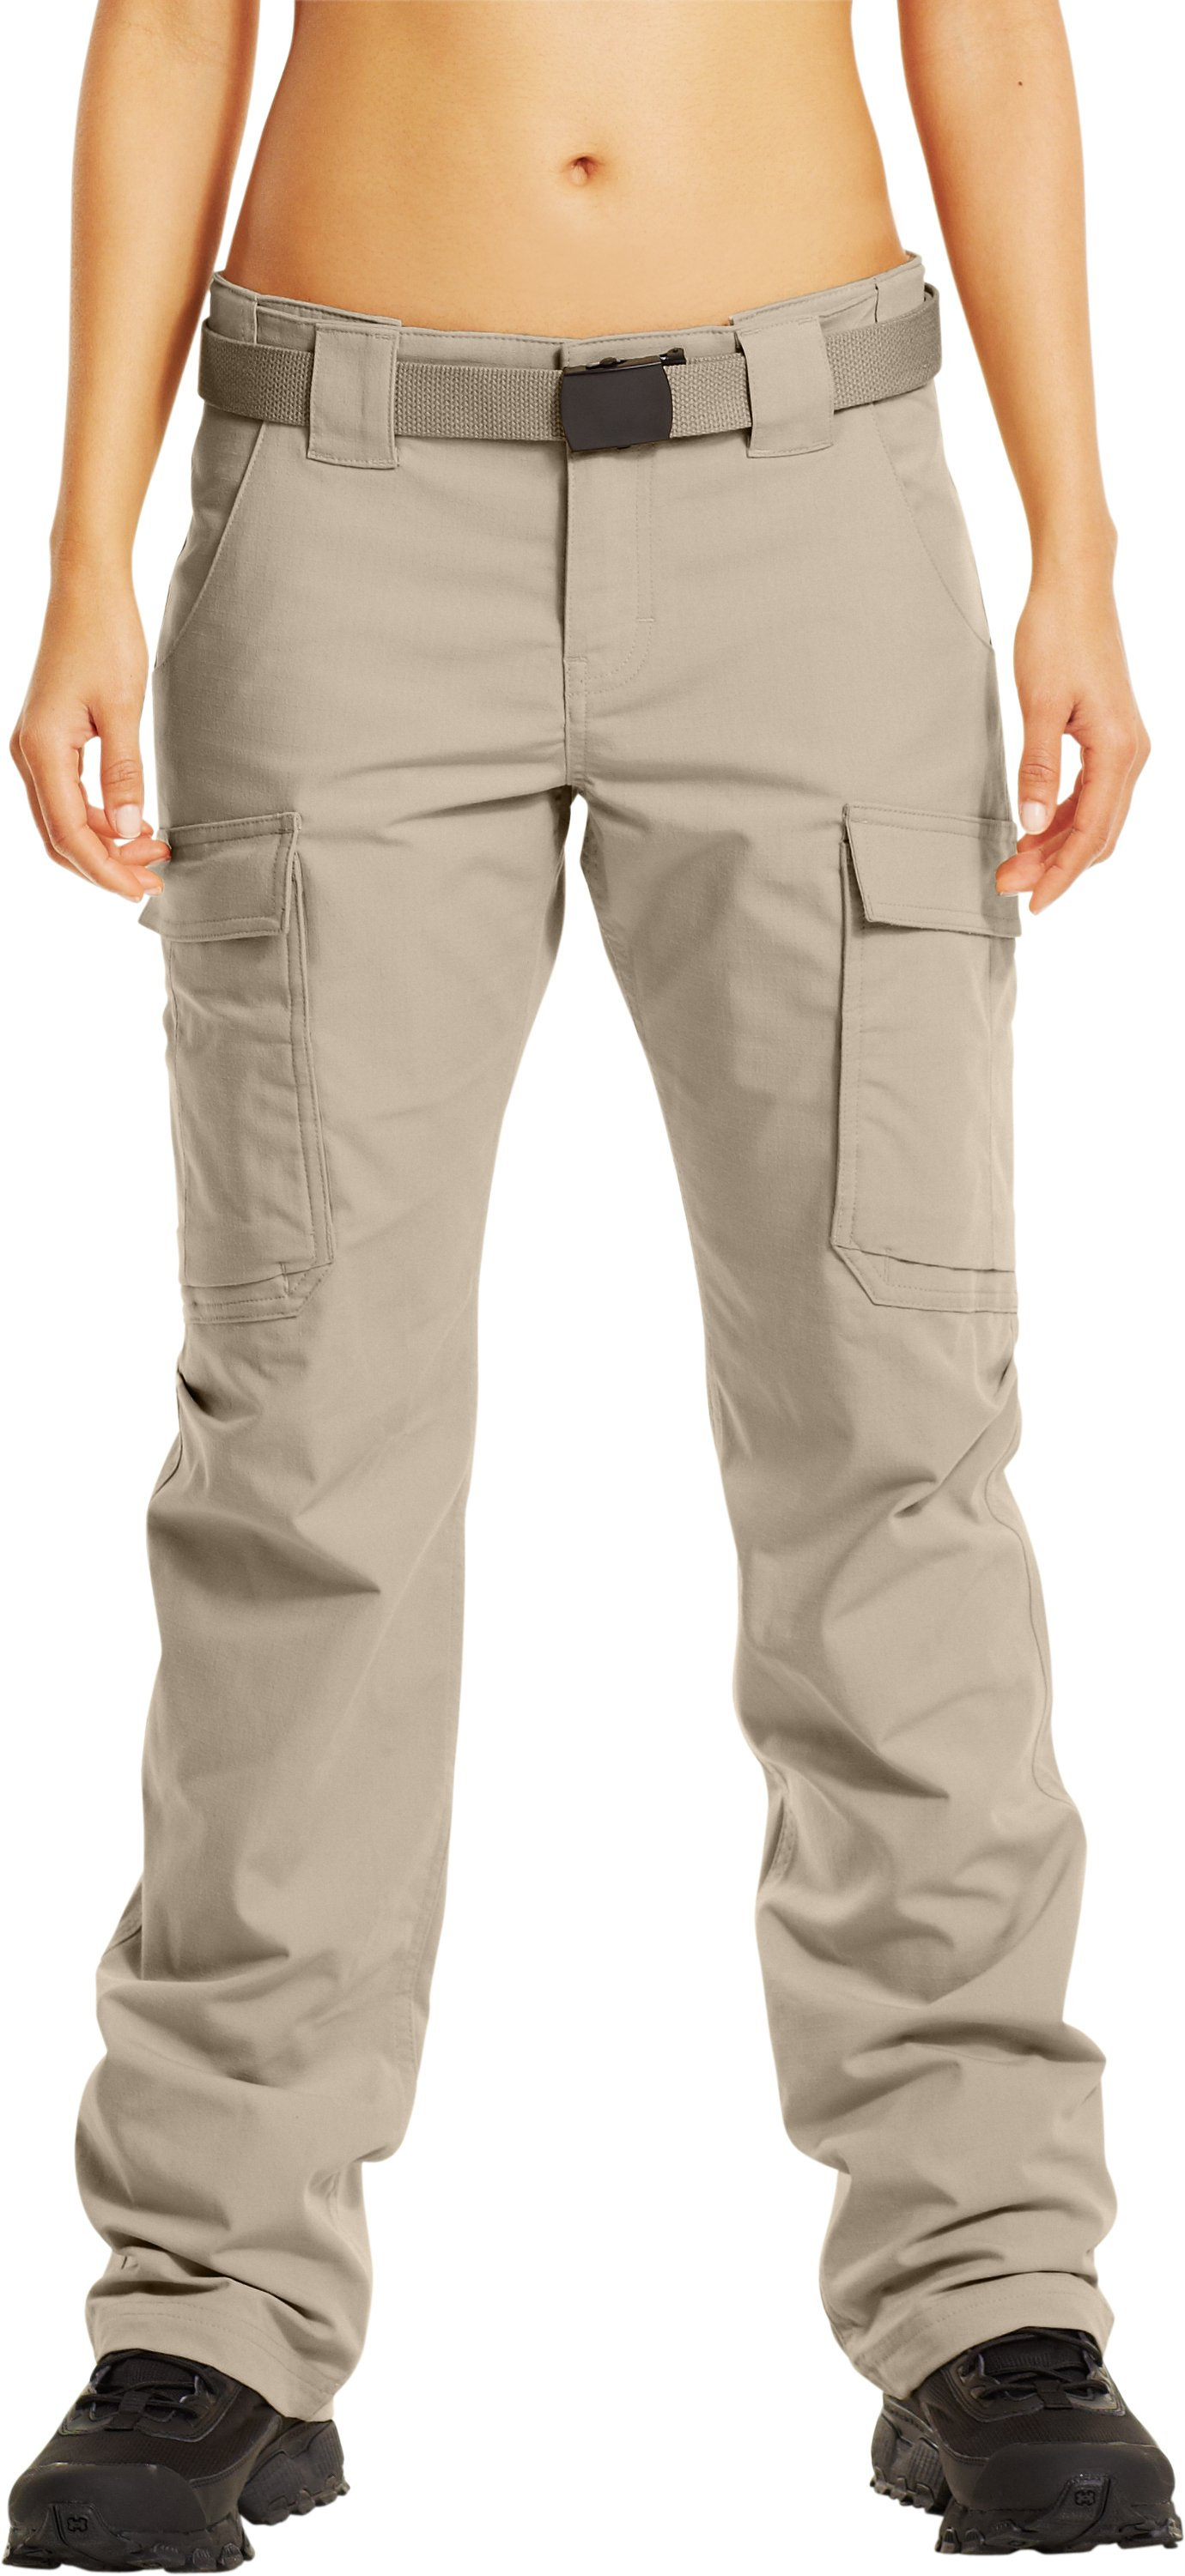 Women's Tactical Duty Pants, Desert Sand, zoomed image